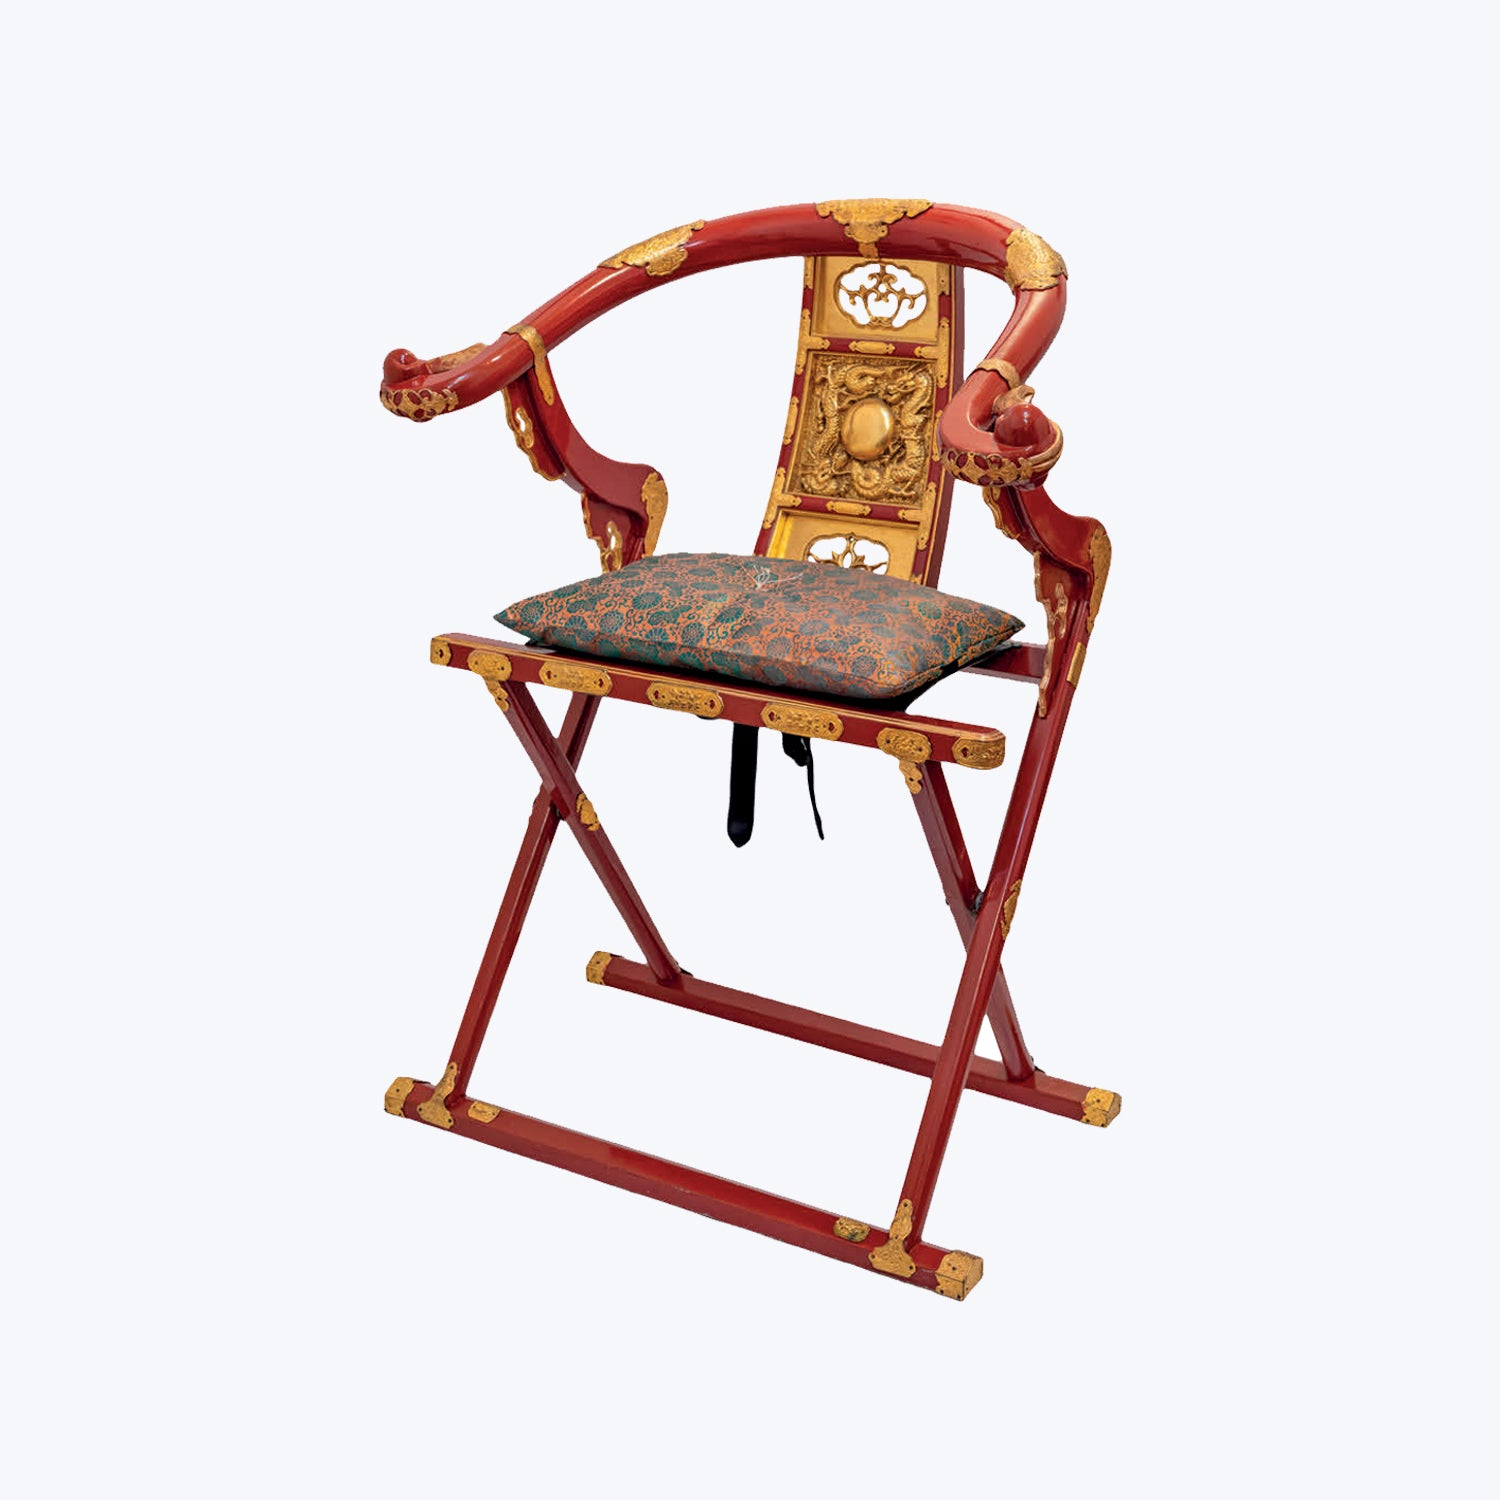 Japanese Folding Chair (Kyokuroku) for Priests